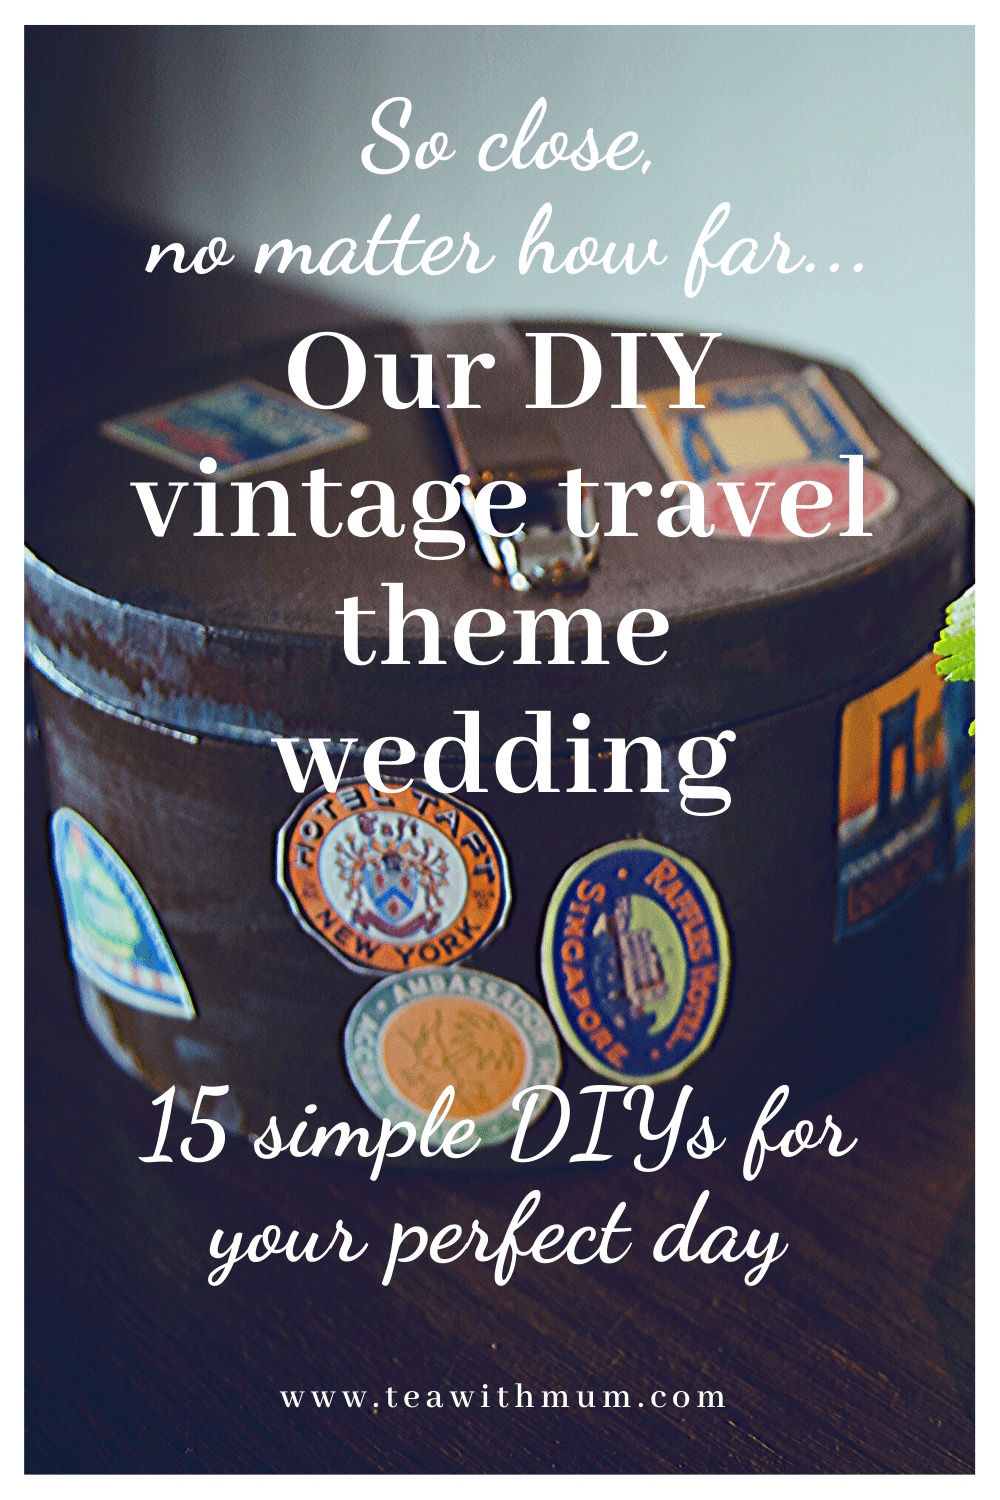 So close, no matter how far: Our DIY vintage travel themed wedding; 15 simple DIY ideas for your perfect day; red and navy wedding; decopatch suitcase with travel stickers for the ring bearer